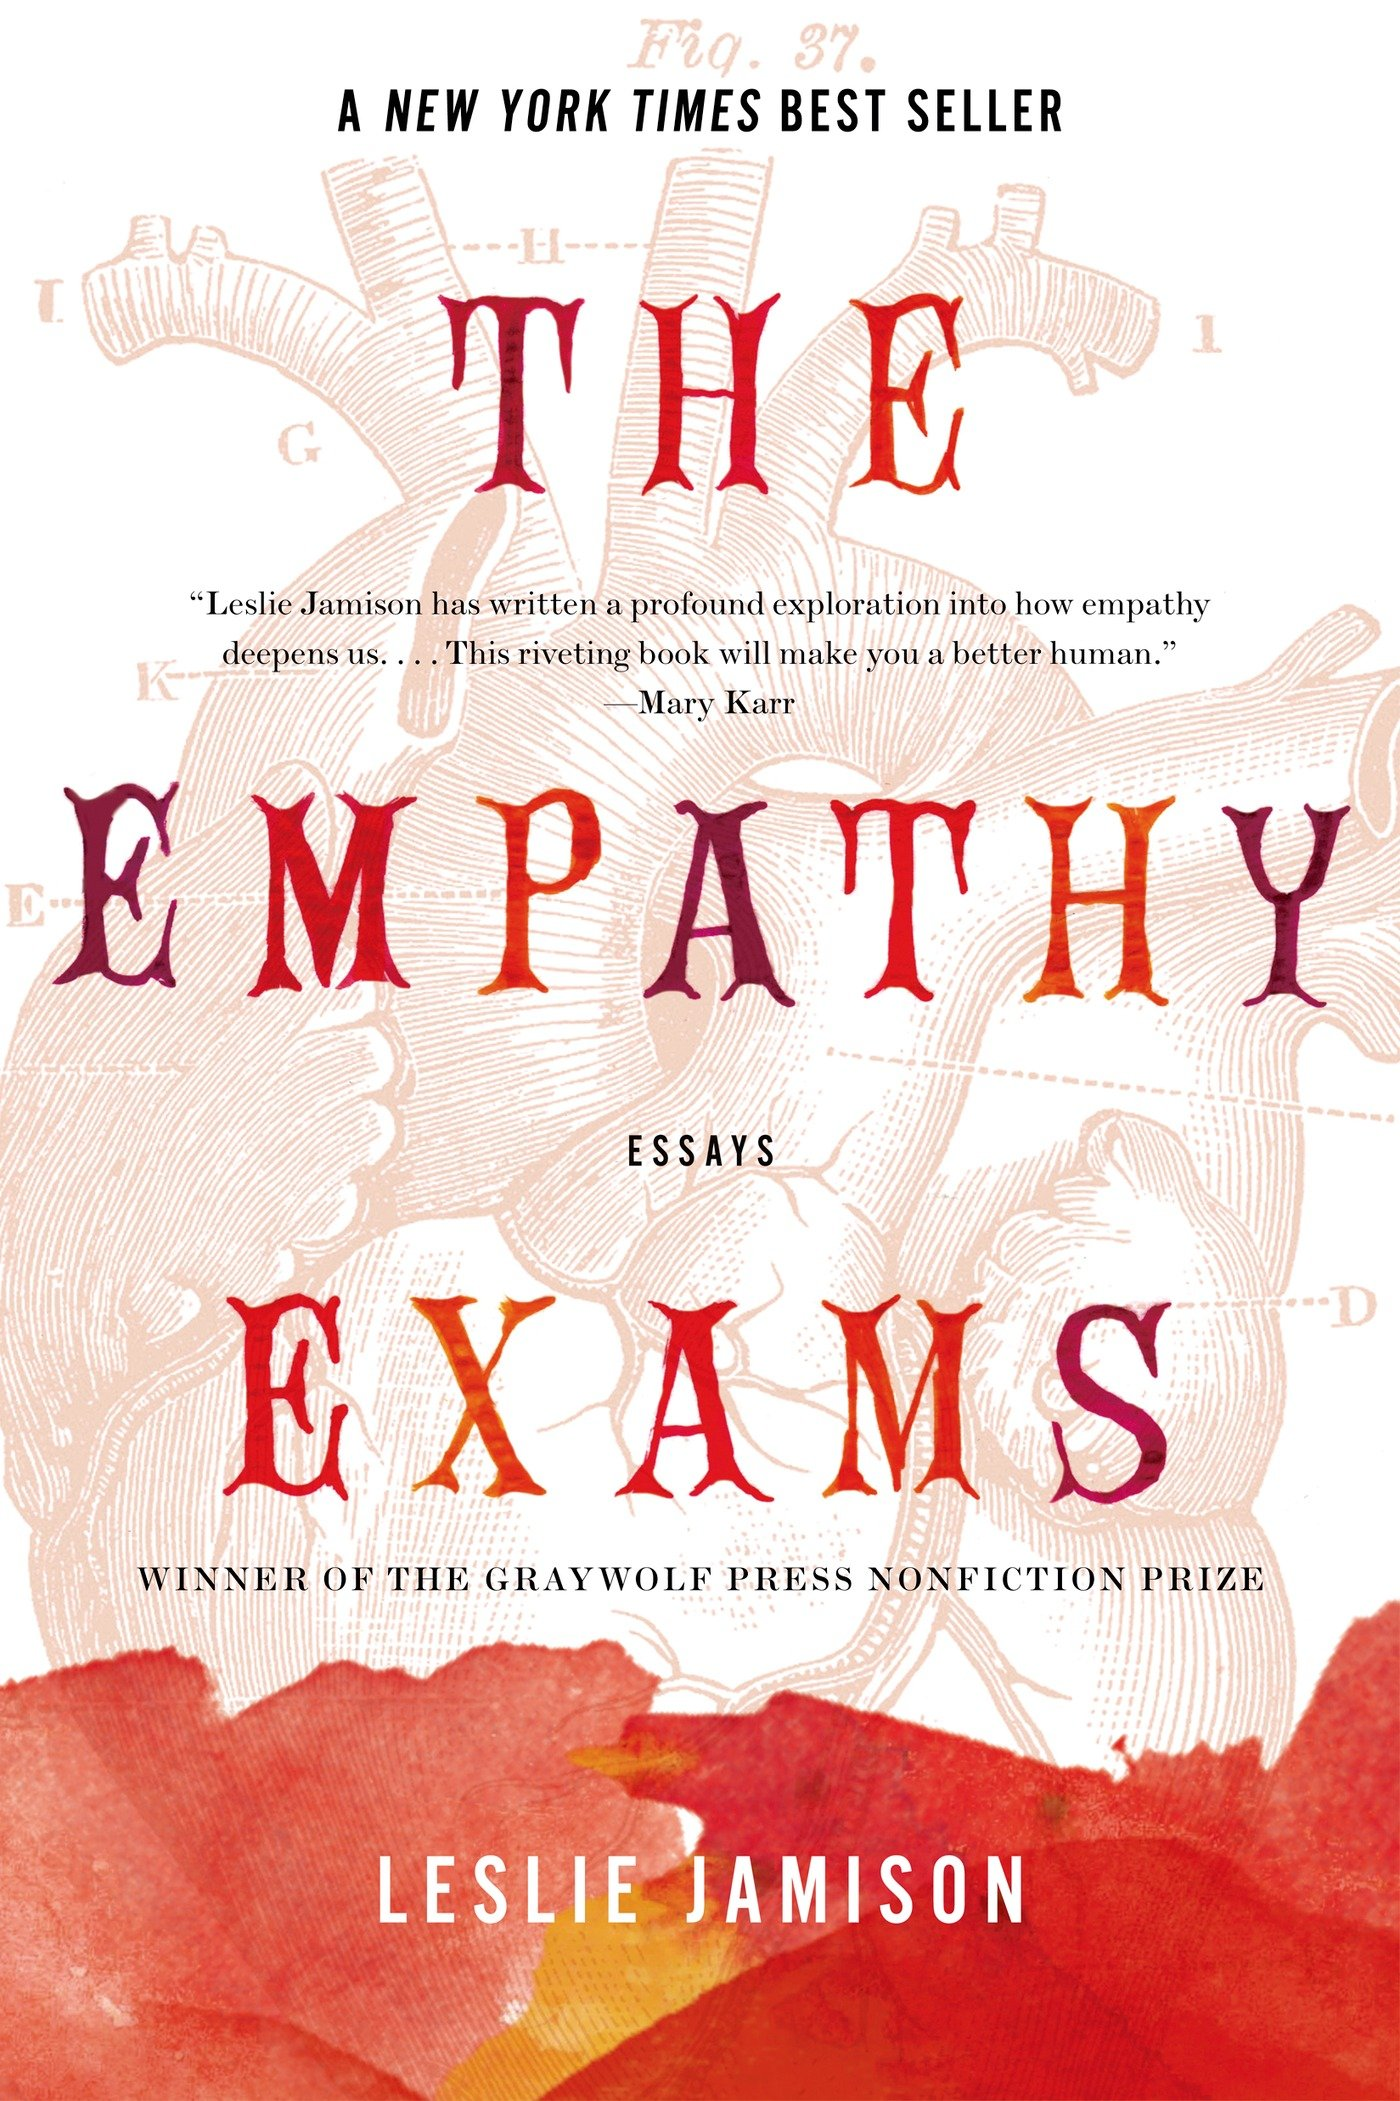 essays on exams essay exams student services the university of the empathy exams essays leslie jamison amazon the empathy exams essays leslie jamison